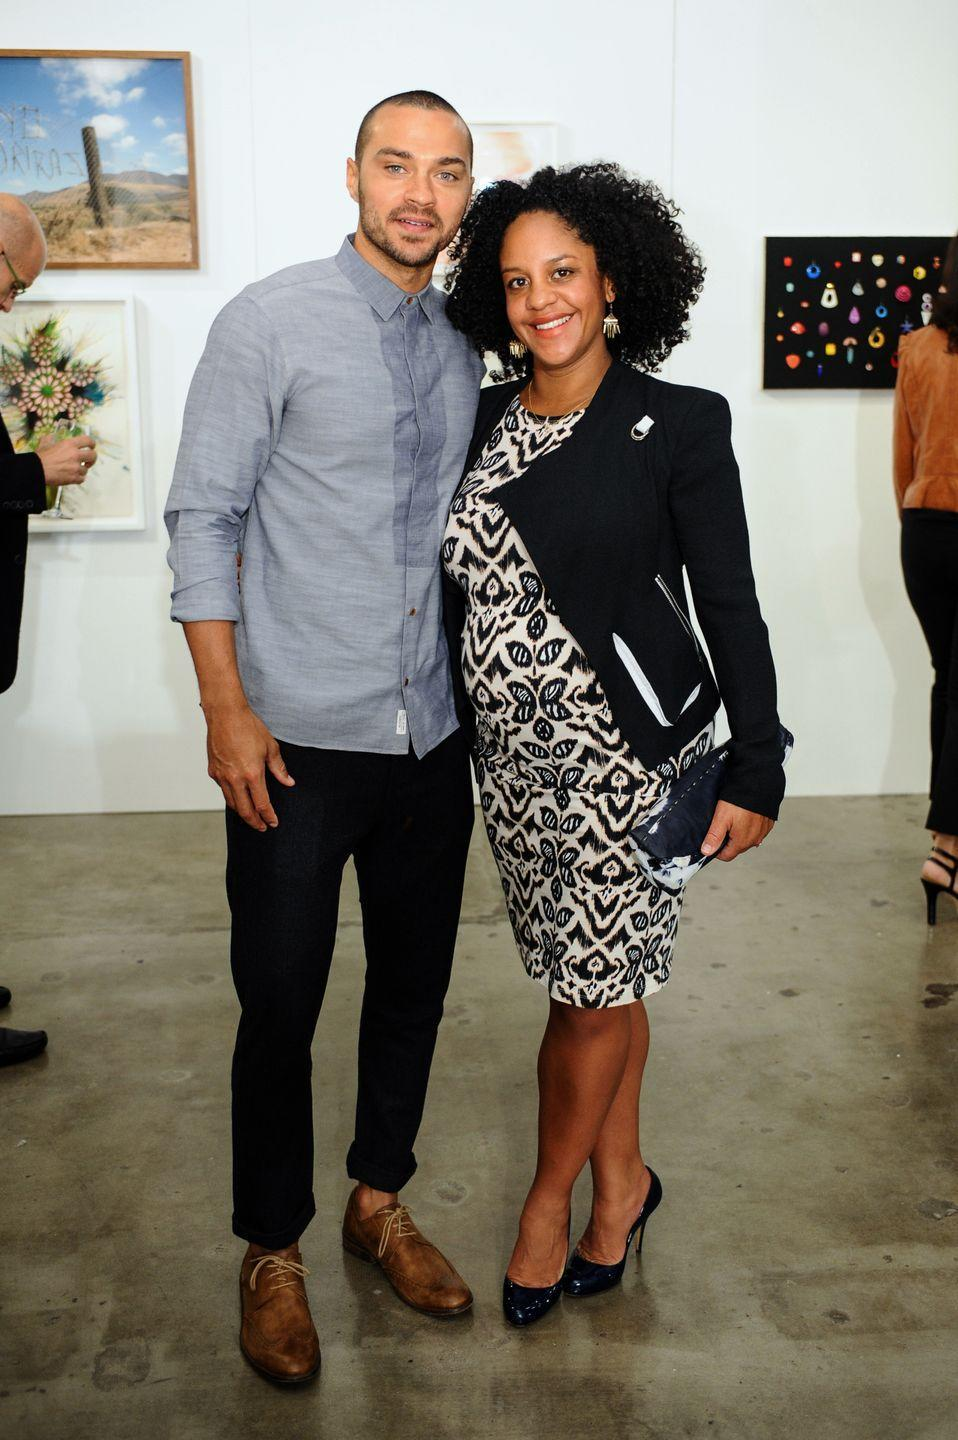 <p>Jesse Williams married his longtime girlfriend, Aryn Drake-Lee, a real estate agent in 2012. The couple share two children together, but sadly divorced in 2017. </p>